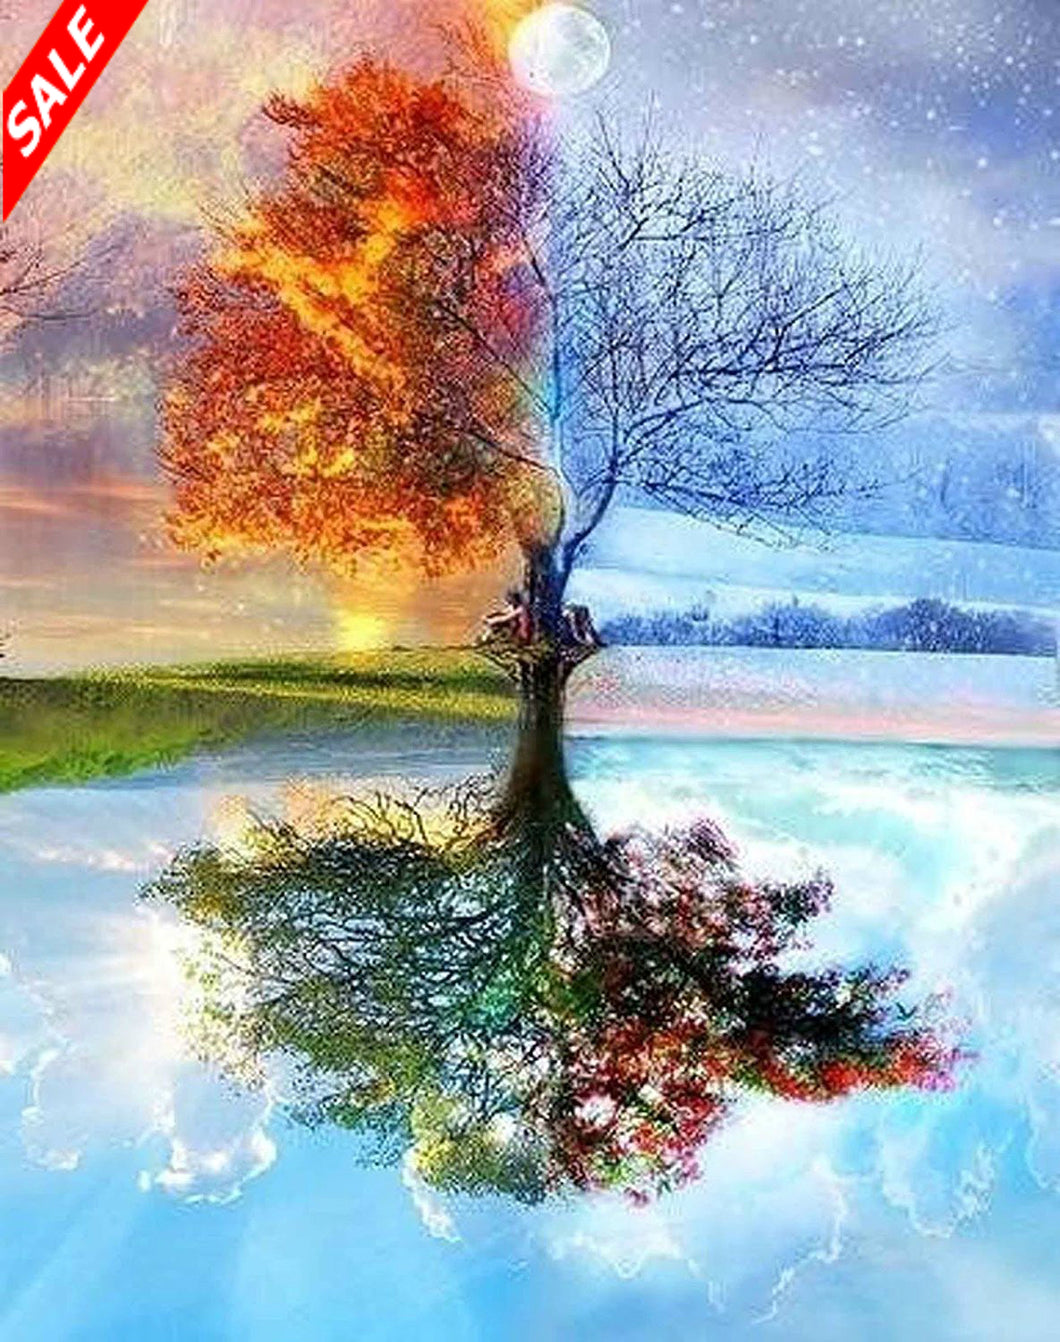 5D Diamond Painting Kit 4 Seasons - Save and Shop Collections